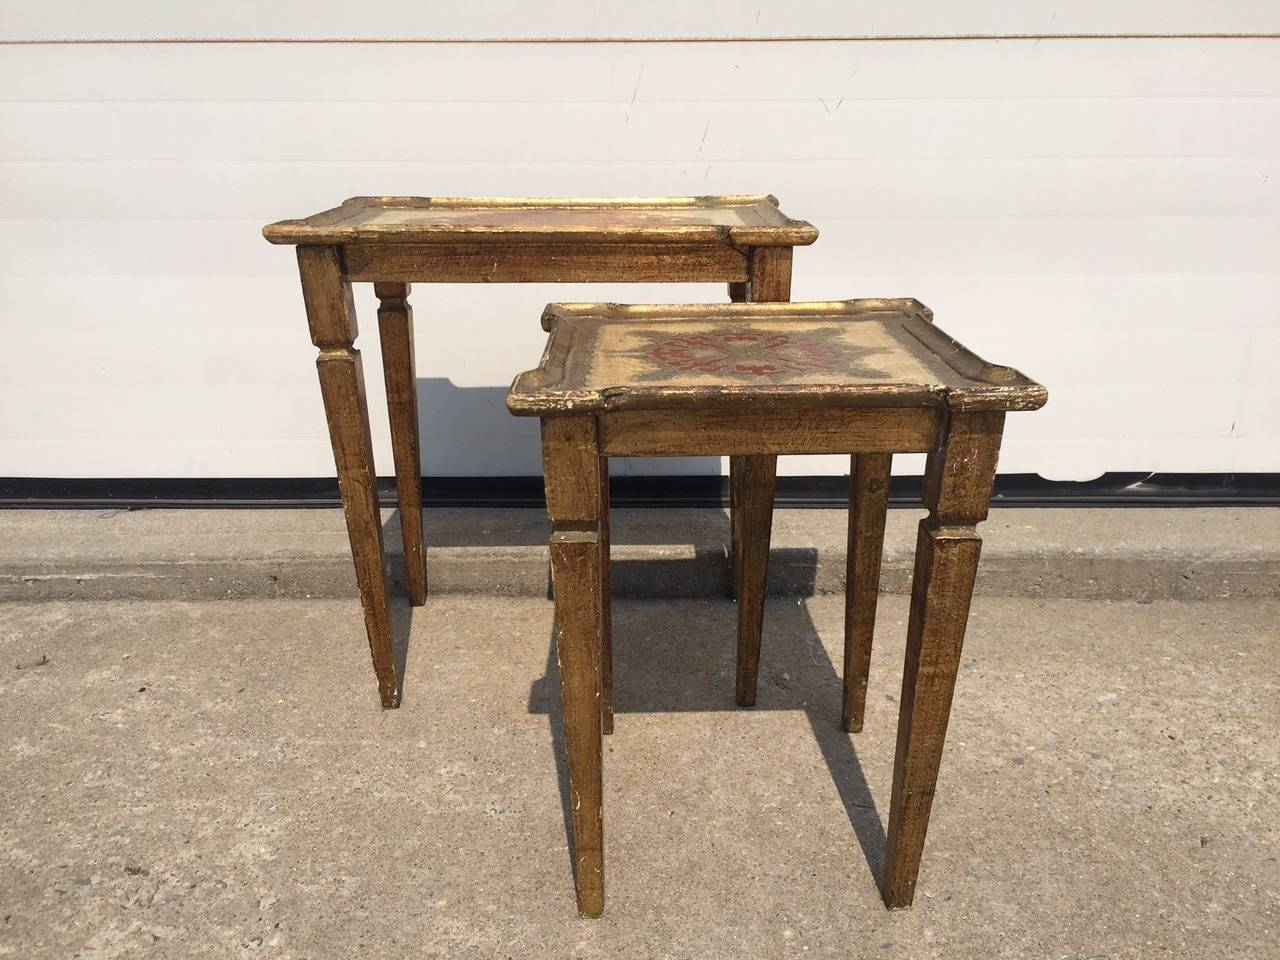 Set of two poly-chromed and heavily decorated Beechwood Nesting Tables.  Incredibly useful and decorative.  Use either together or apart.  Italian made circa 1900.  Smaller table measure H. 17.5